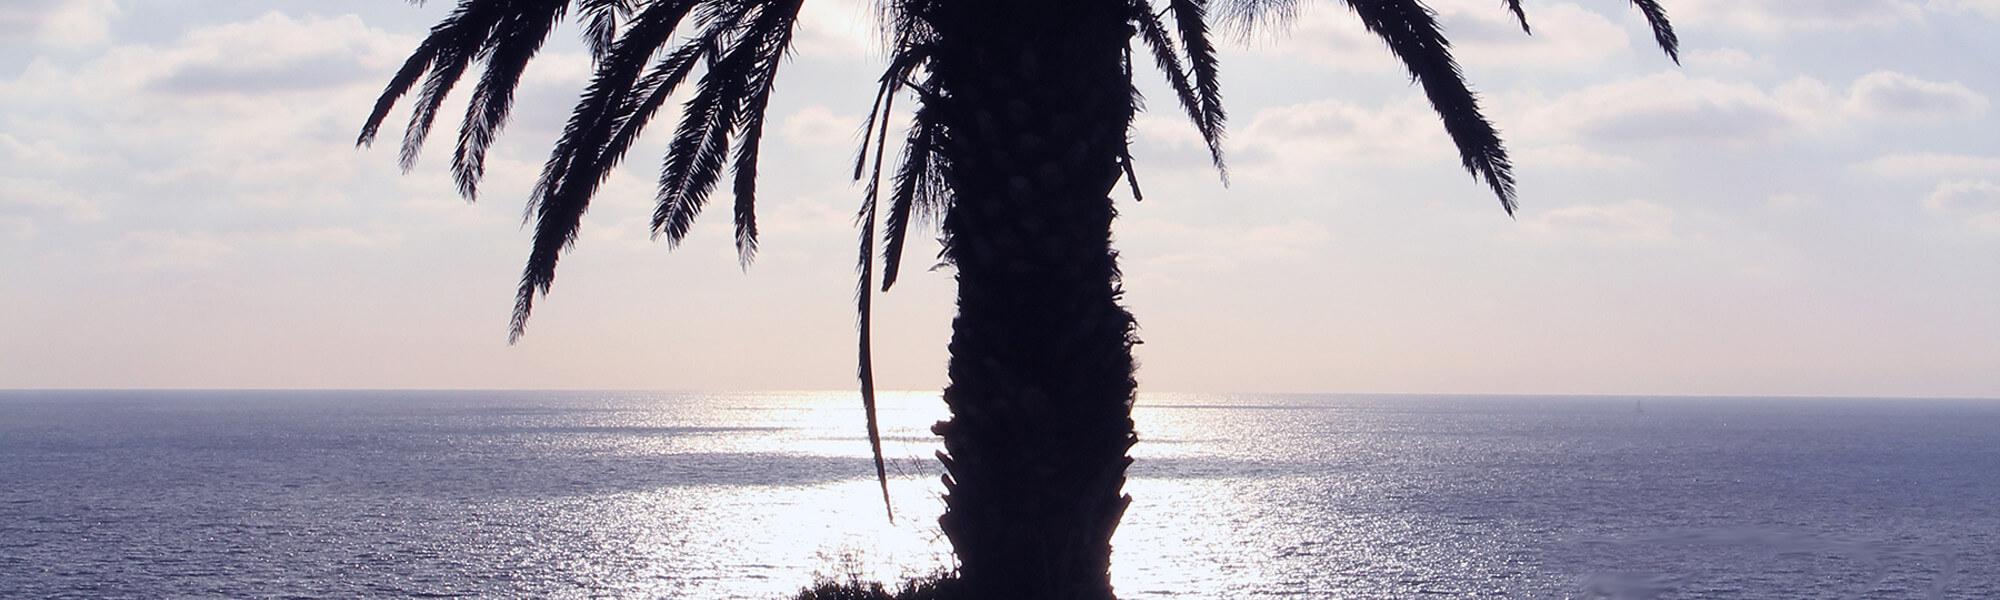 palm tree overlooking ocean